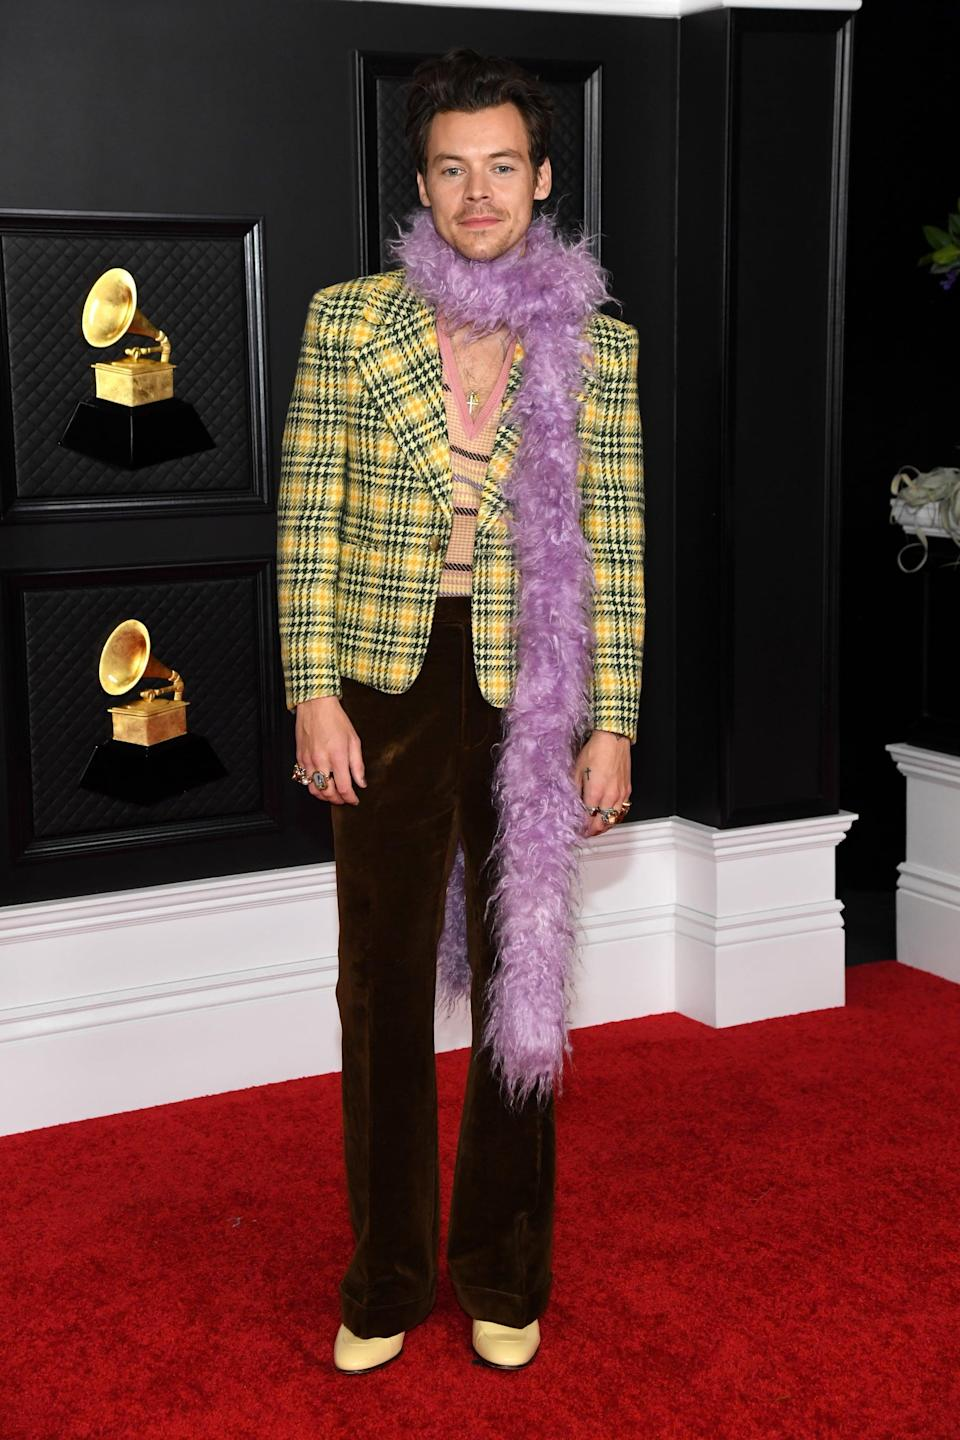 "<p>Wearing a plaid Gucci jacket with <a href=""https://www.popsugar.com/fashion/harry-styles-banana-necklace-2021-grammys-48217742"" class=""link rapid-noclick-resp"" rel=""nofollow noopener"" target=""_blank"" data-ylk=""slk:a purple boa"">a purple boa</a> and pale-yellow boots to the 2020 Grammys.</p>"